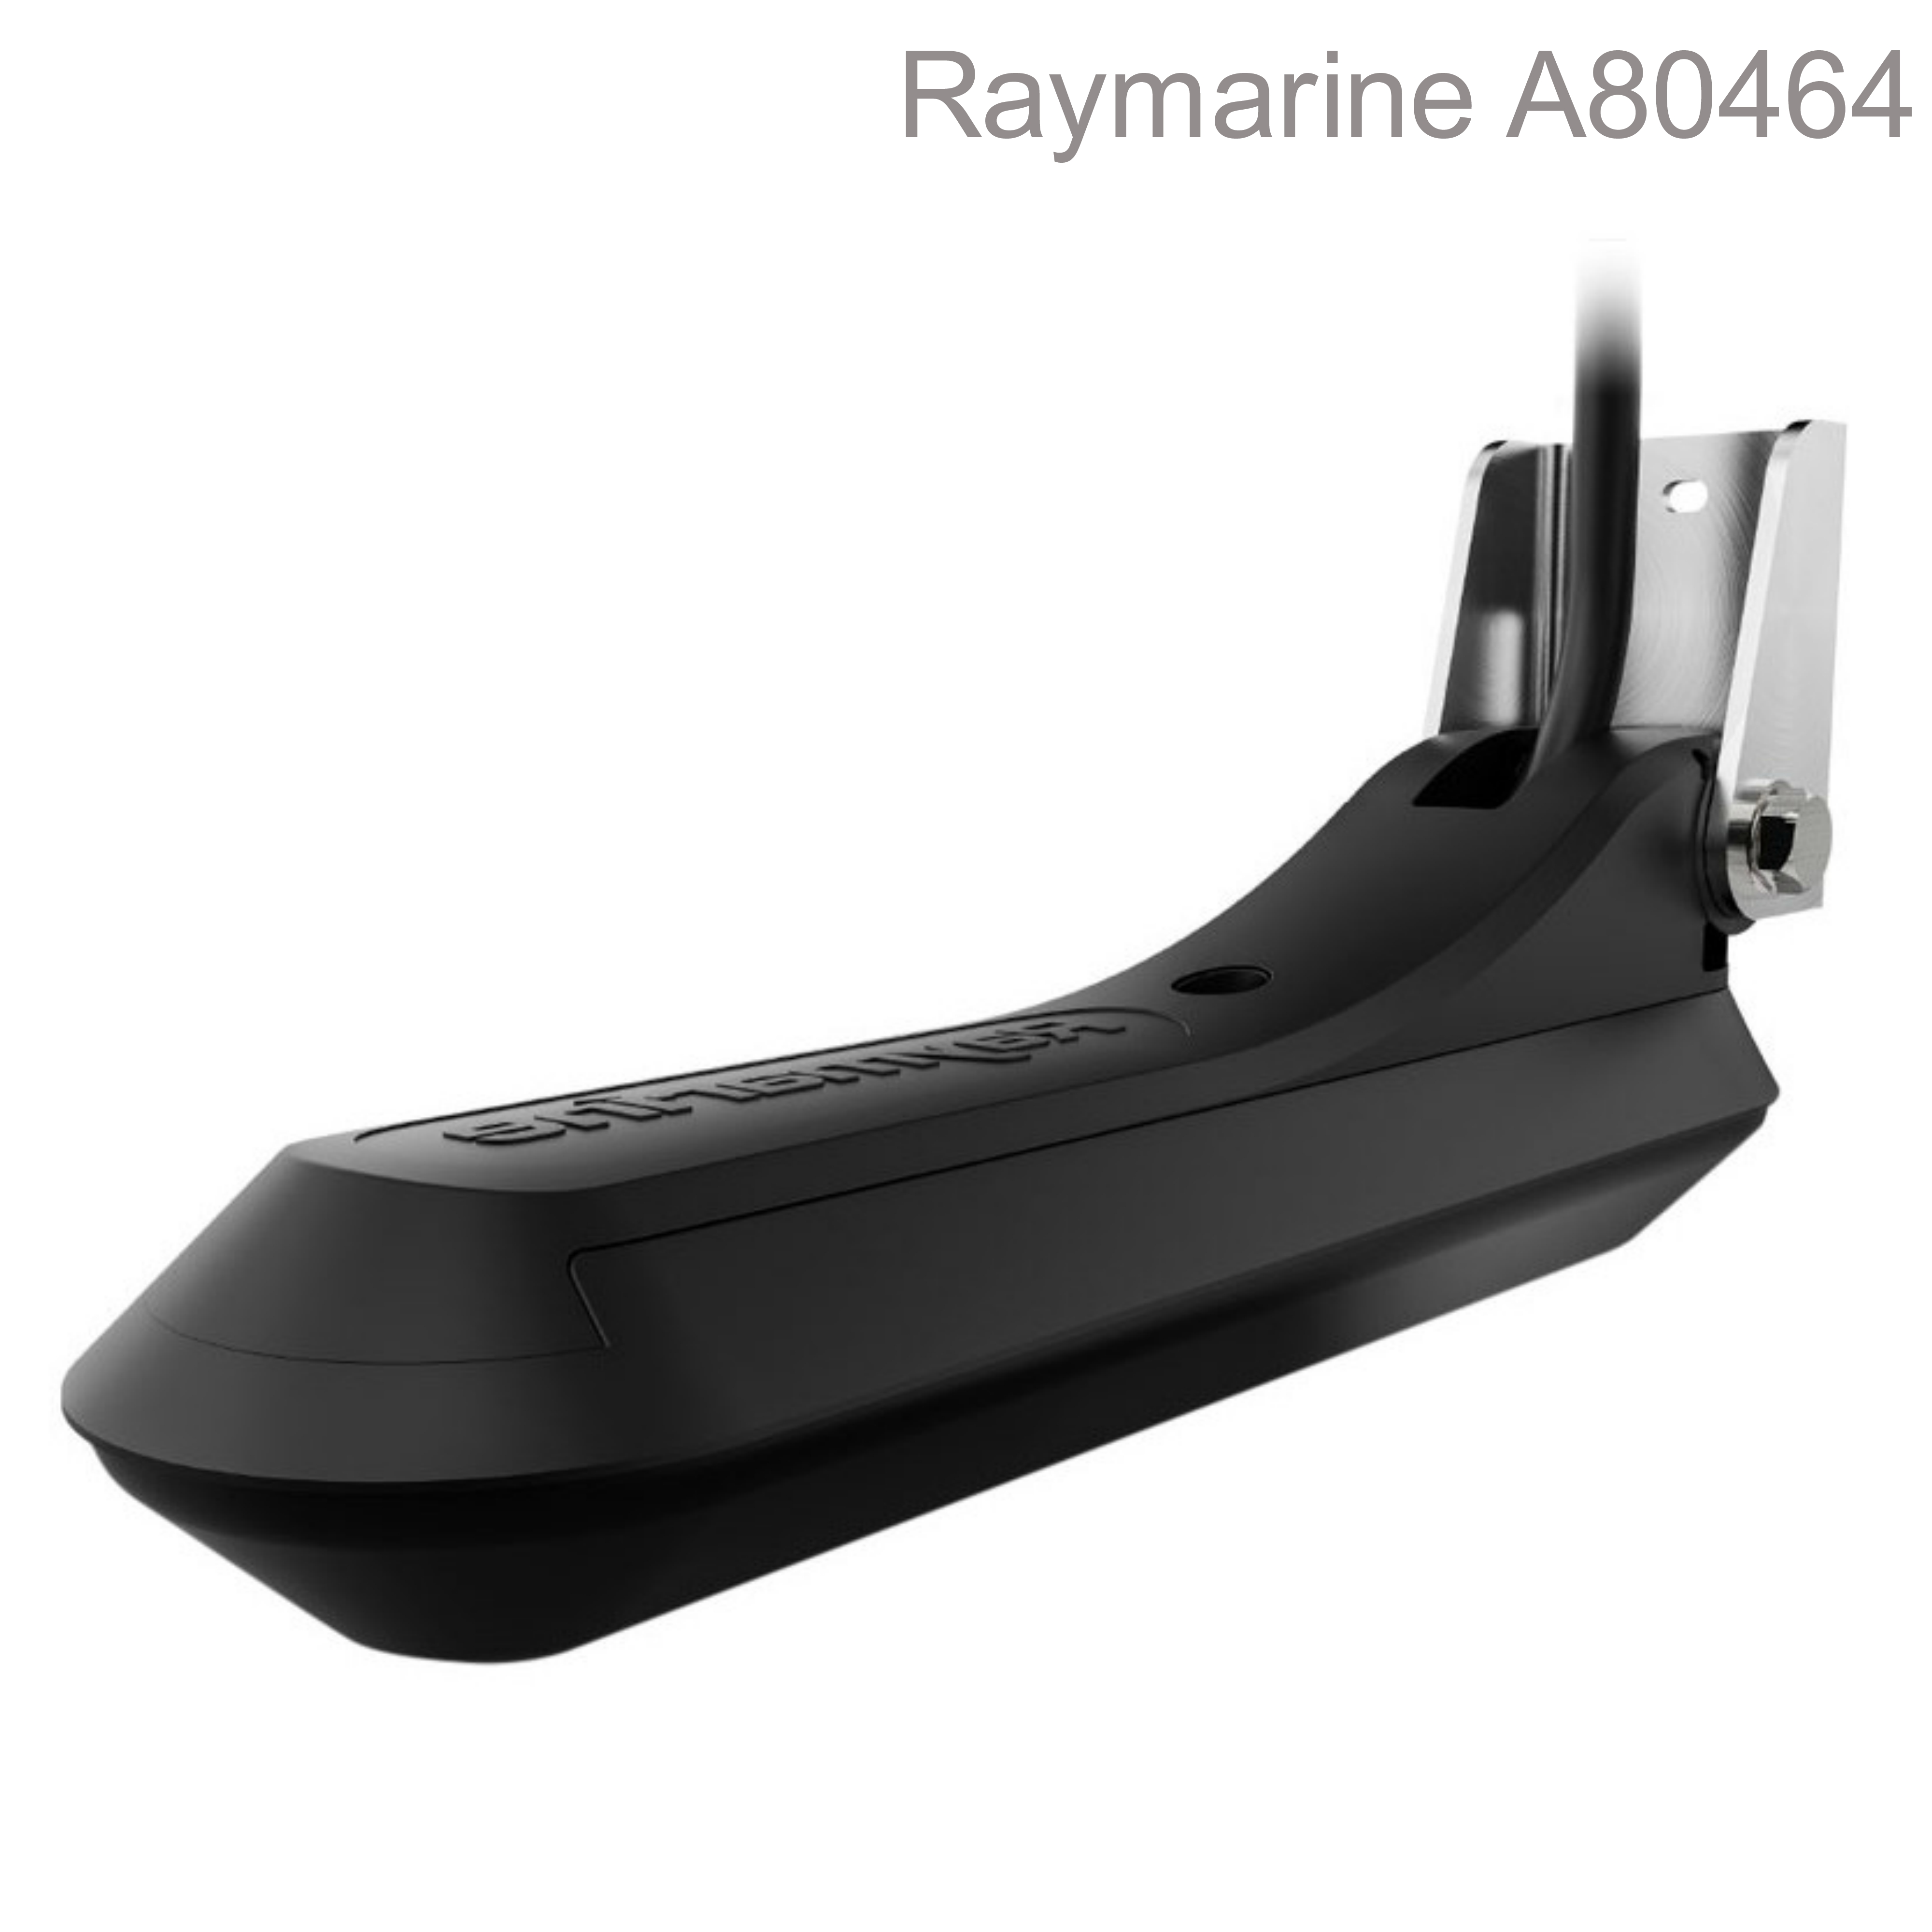 Raymarine RV-100 RealVision 3D Transom Mount Transducer?8m Cable?For Axiom Units